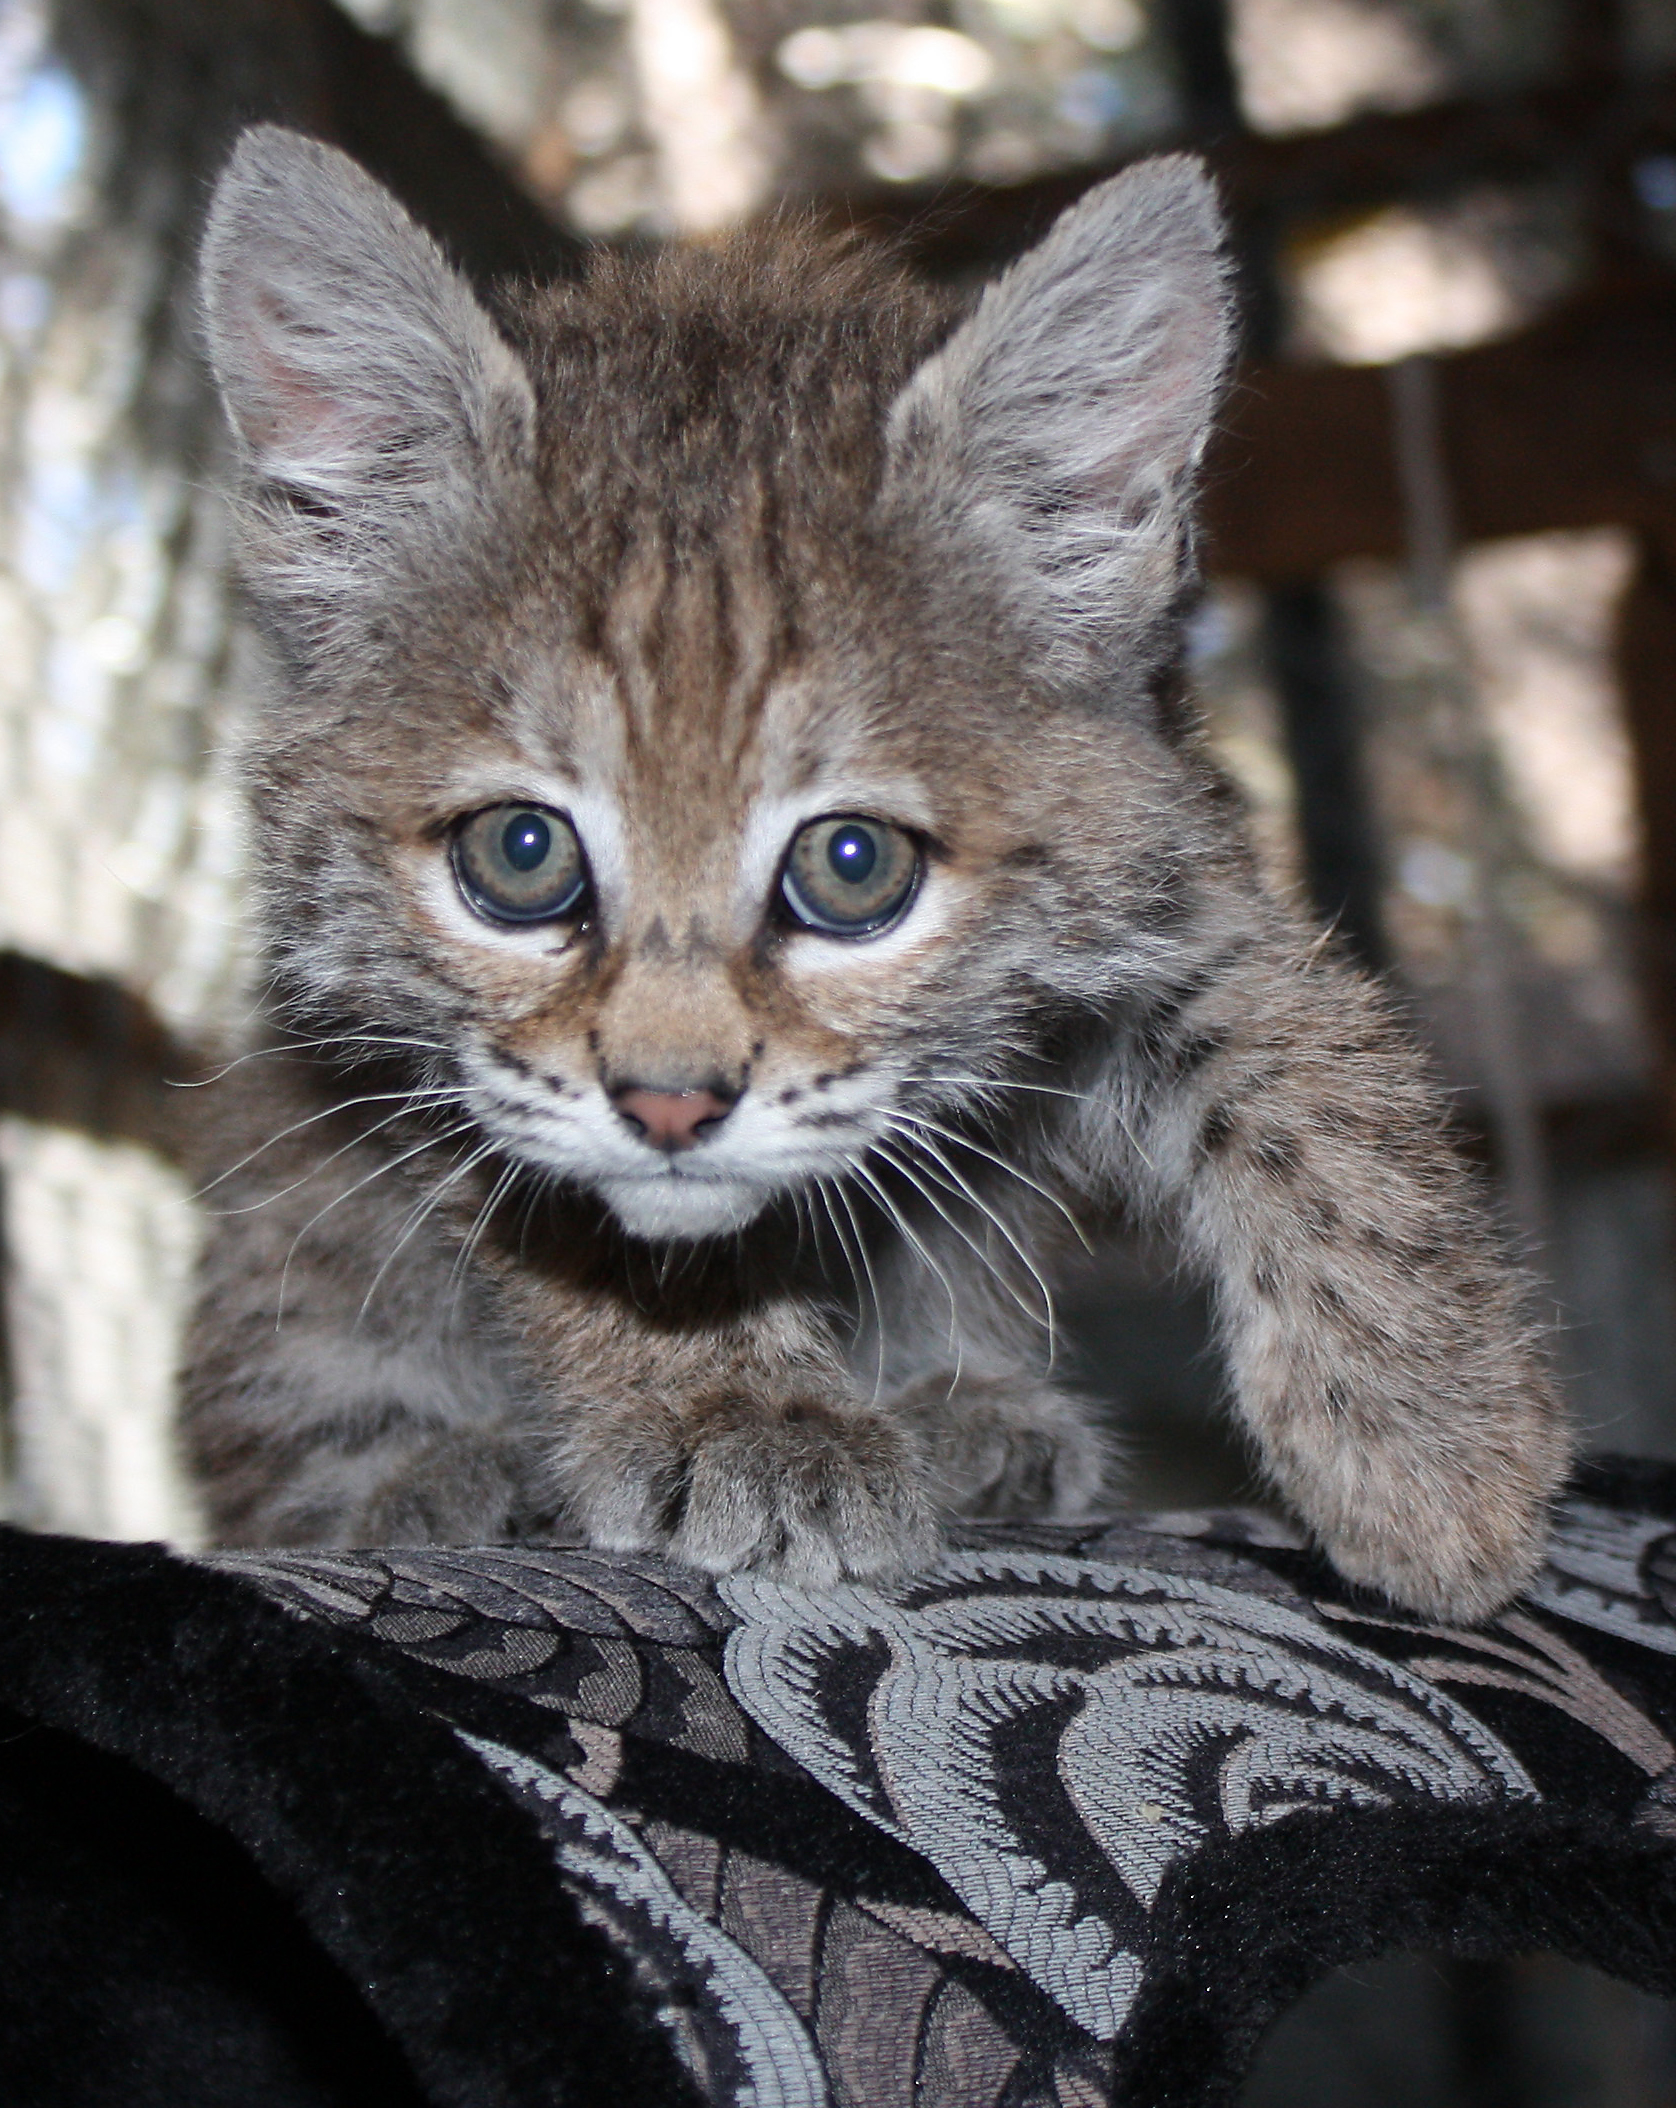 Chips the Bobcat